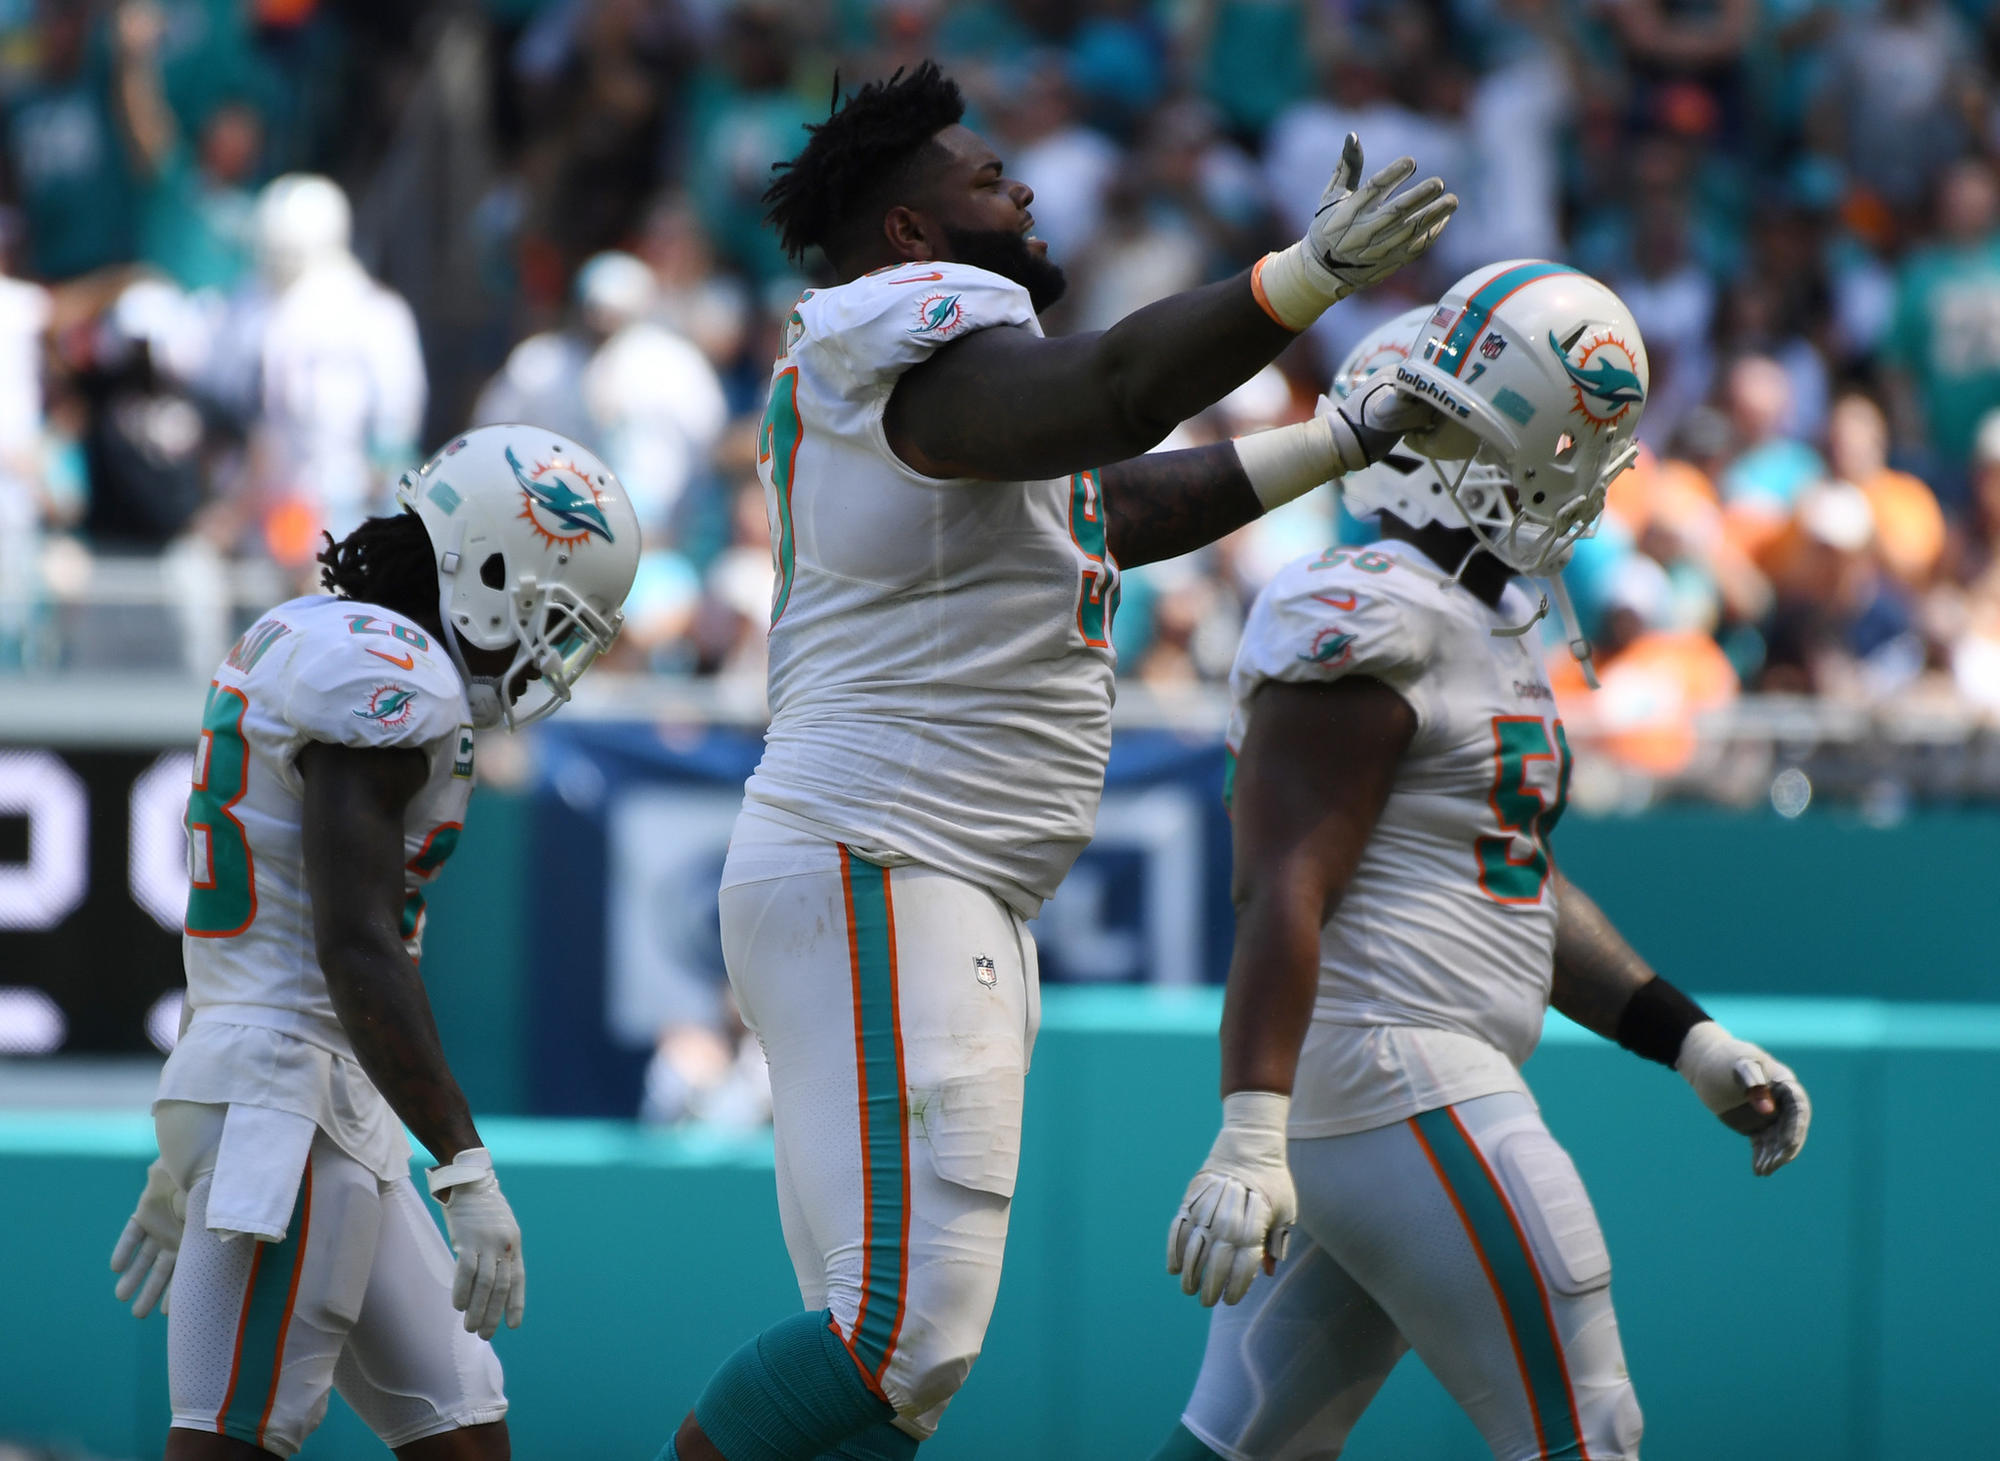 Fl-sp-hyde5-dolphins-drafts-phillips-20181003